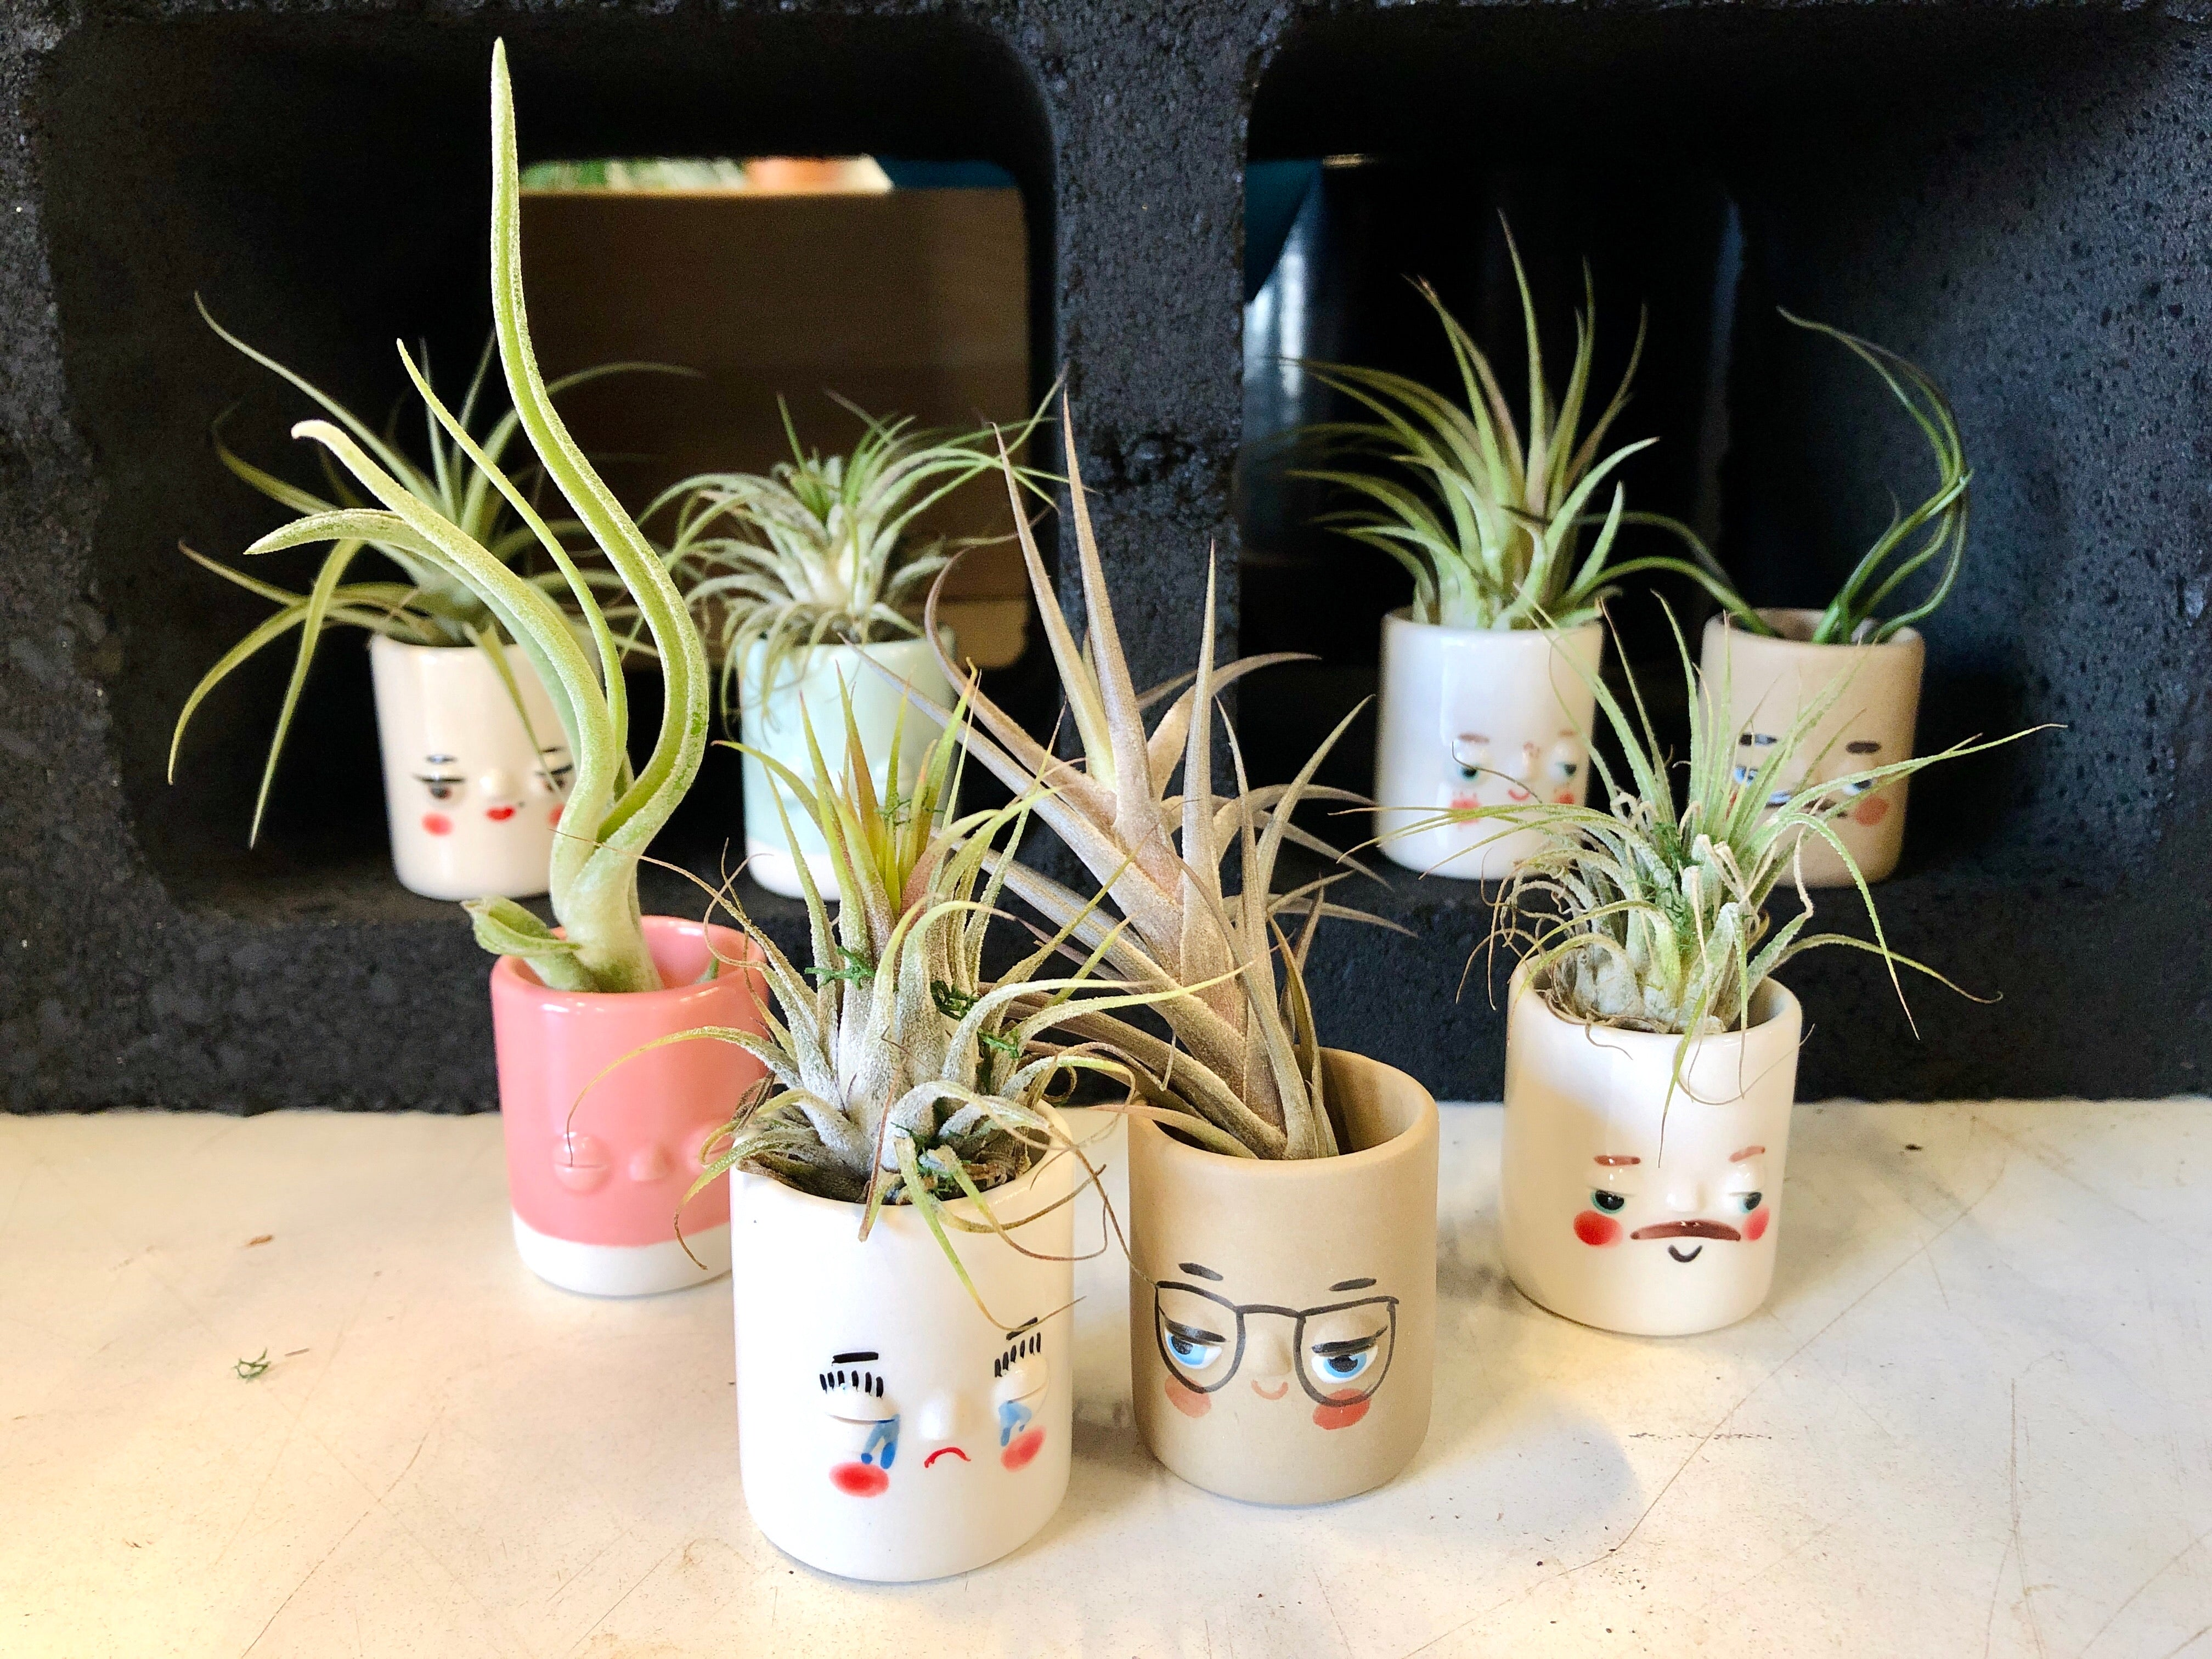 Little Friends Air Plant holder (Air plant included)